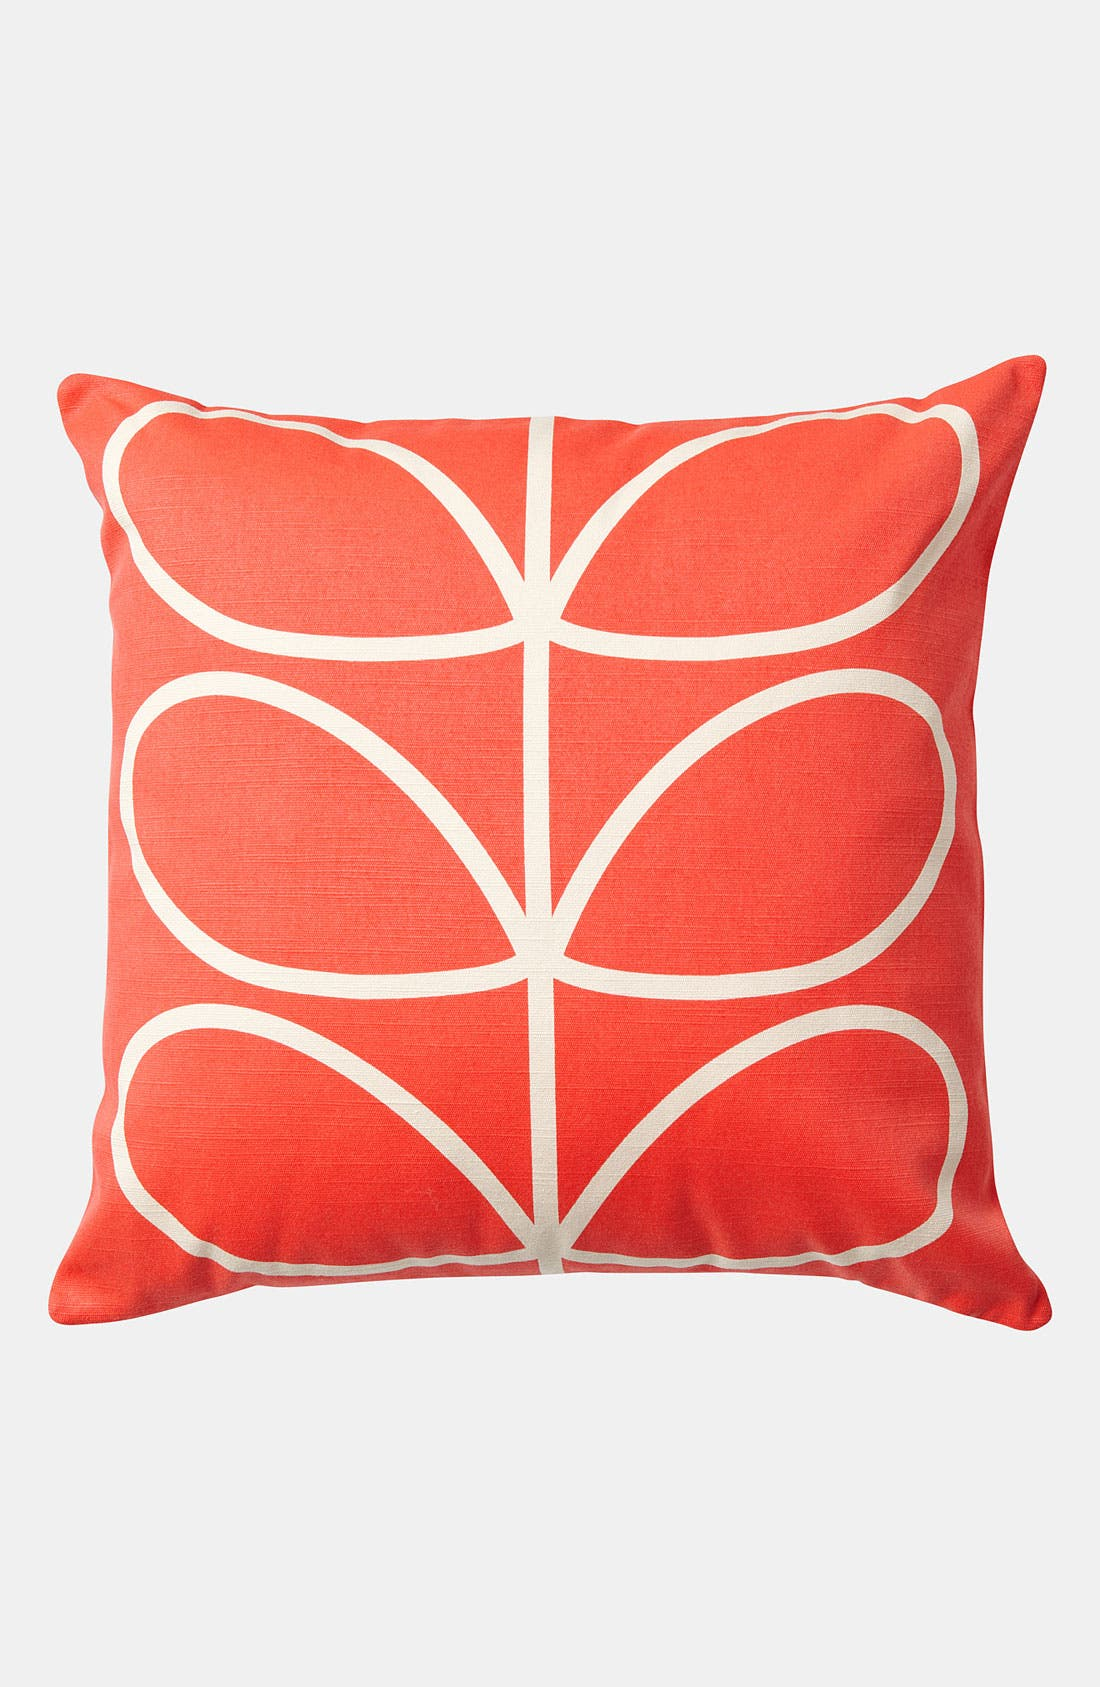 Alternate Image 1 Selected - Orla Kiely 'Linear Stem' Pillow